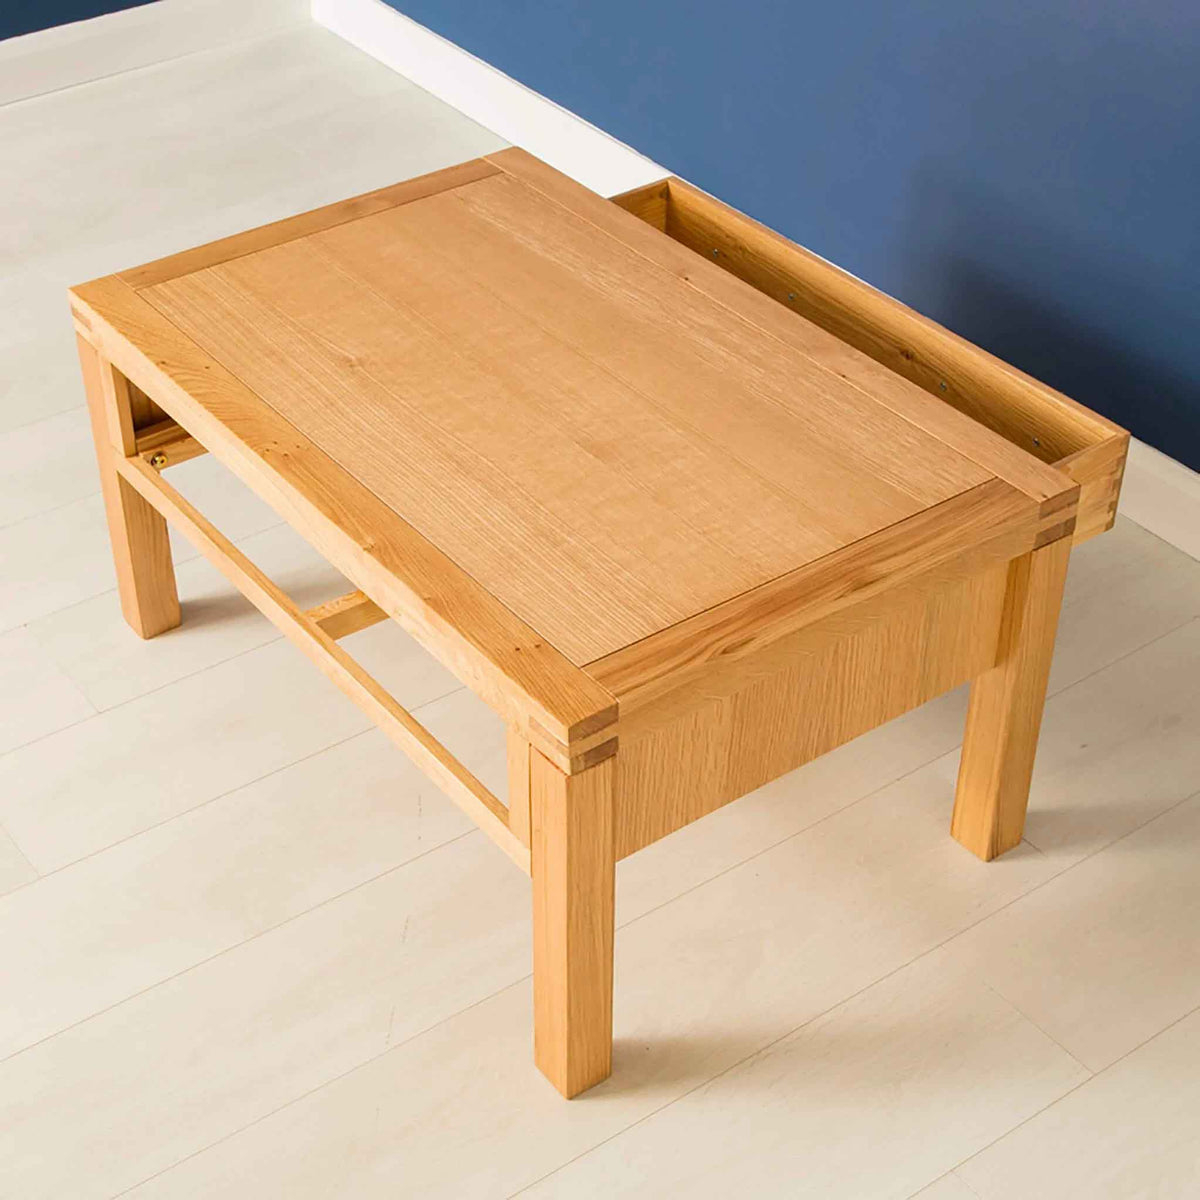 Topside view of the Abbey Light Oak Coffee Table with storage from Roseland Furniture